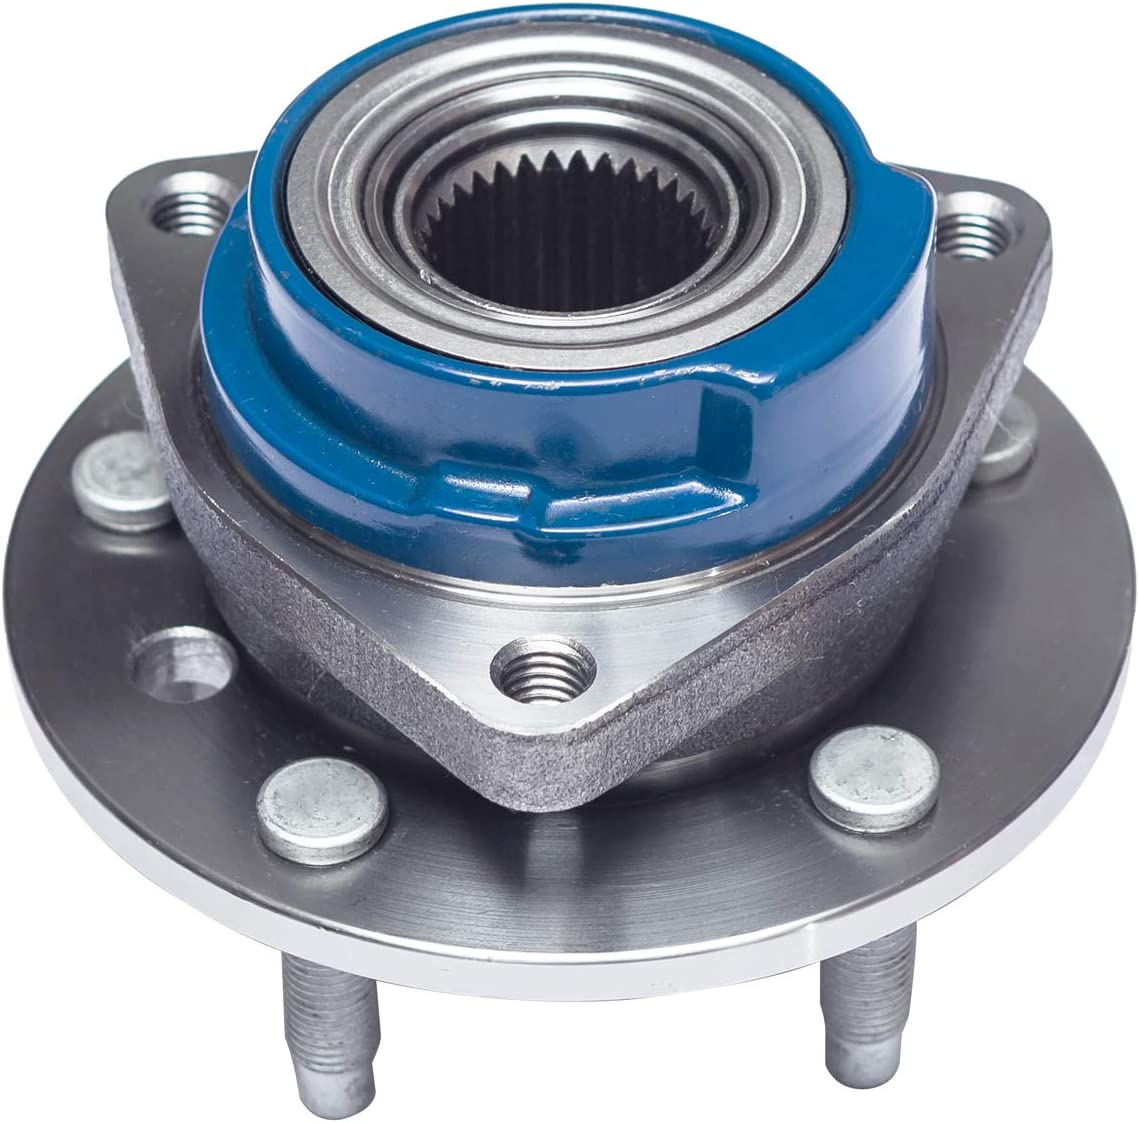 Front Wheel Bearing and Hub Assembly Compatible With Buick Century LaCrosse Regal Chevy Impala Monte Carlo Venture Pontiac Aztek Grand Prix Montana 5 Lug Non-ABS TUCAREST 513160 x2 Pair 513203